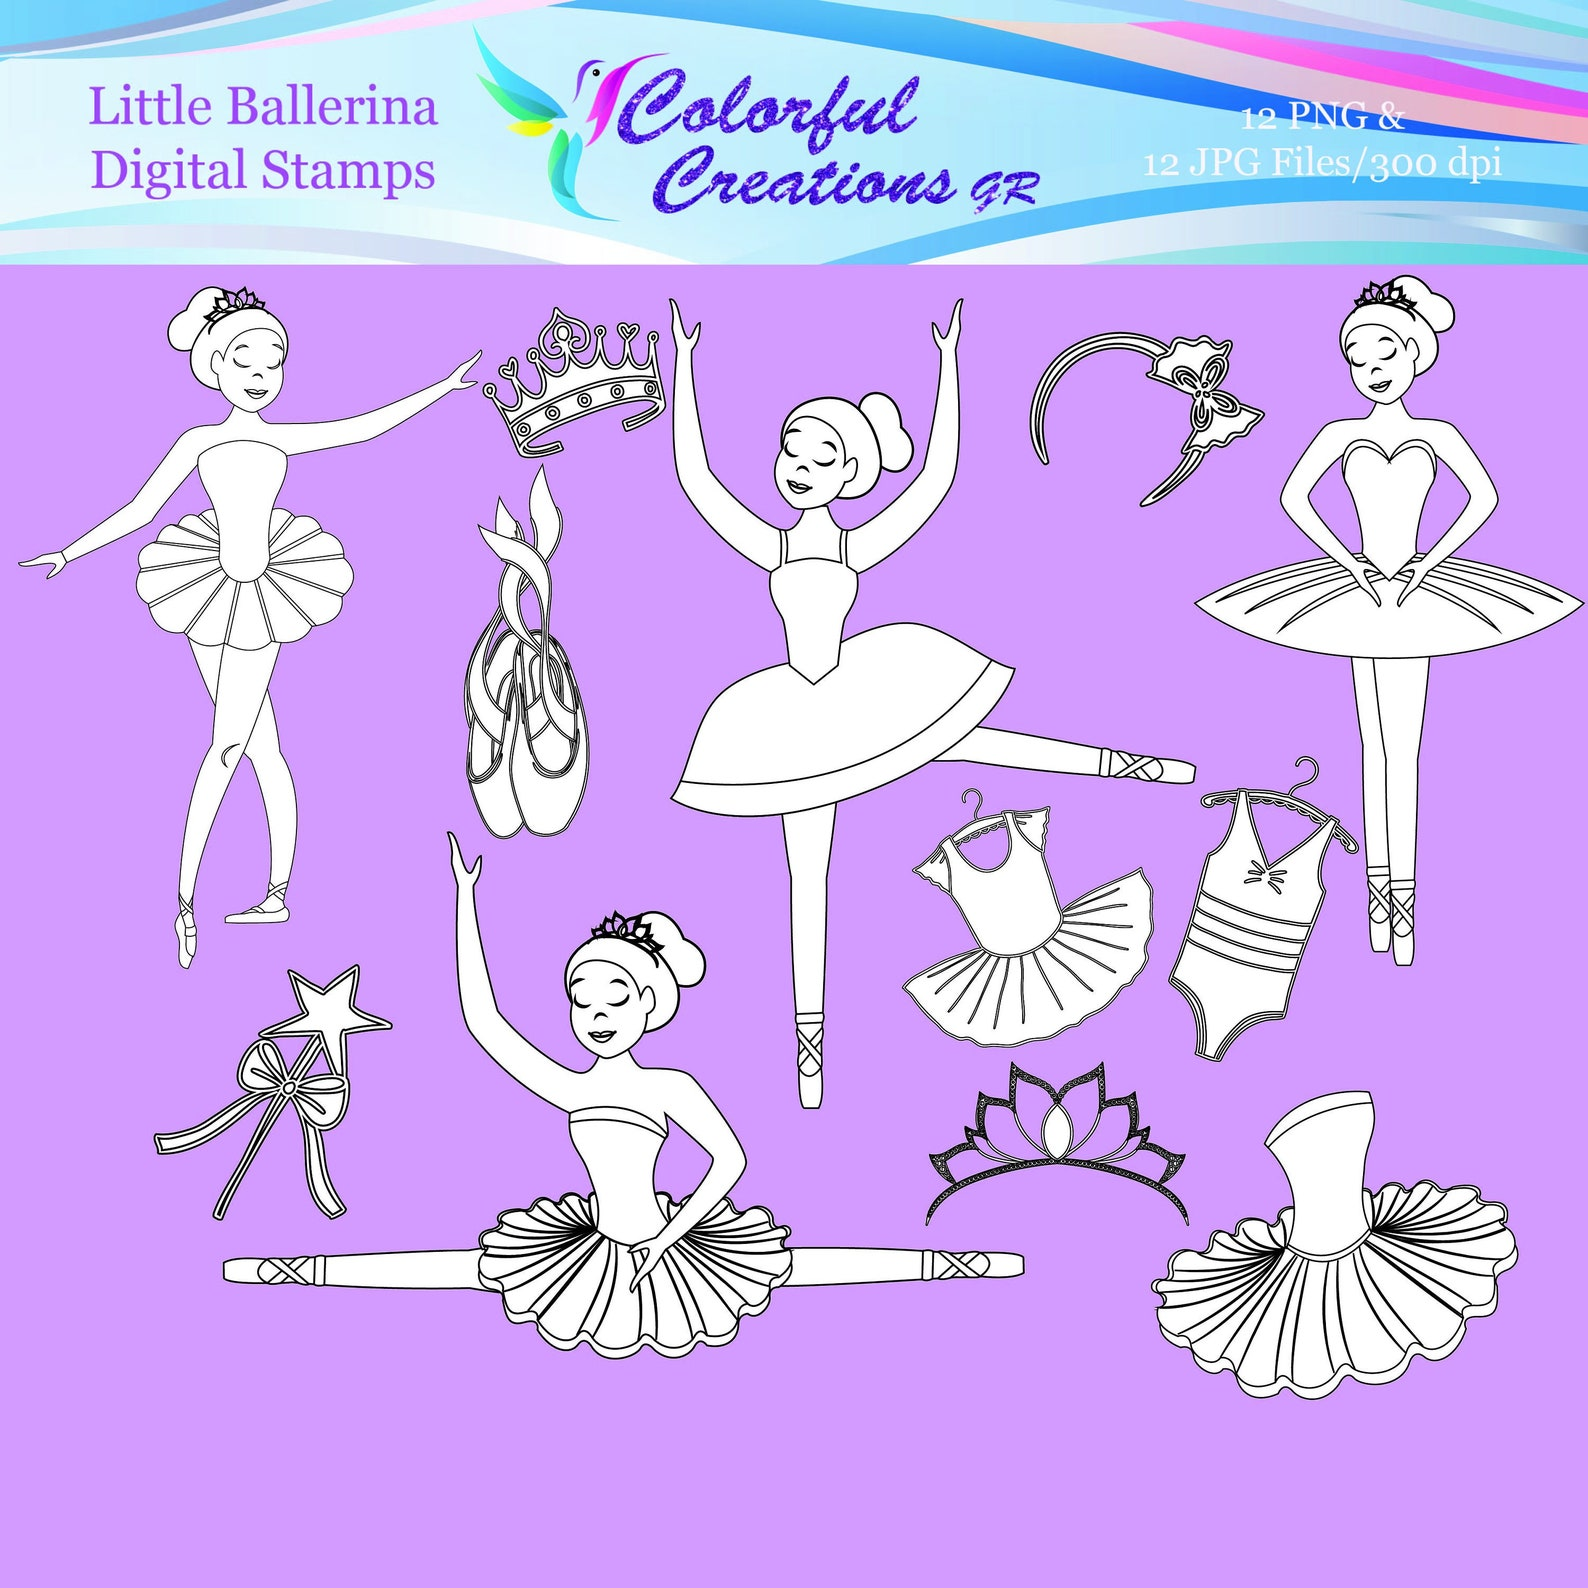 20 % off sale digital stamps, ballerina digital stamps, little ballerina stamps, ballet digital stamps, ballet, personal & comme